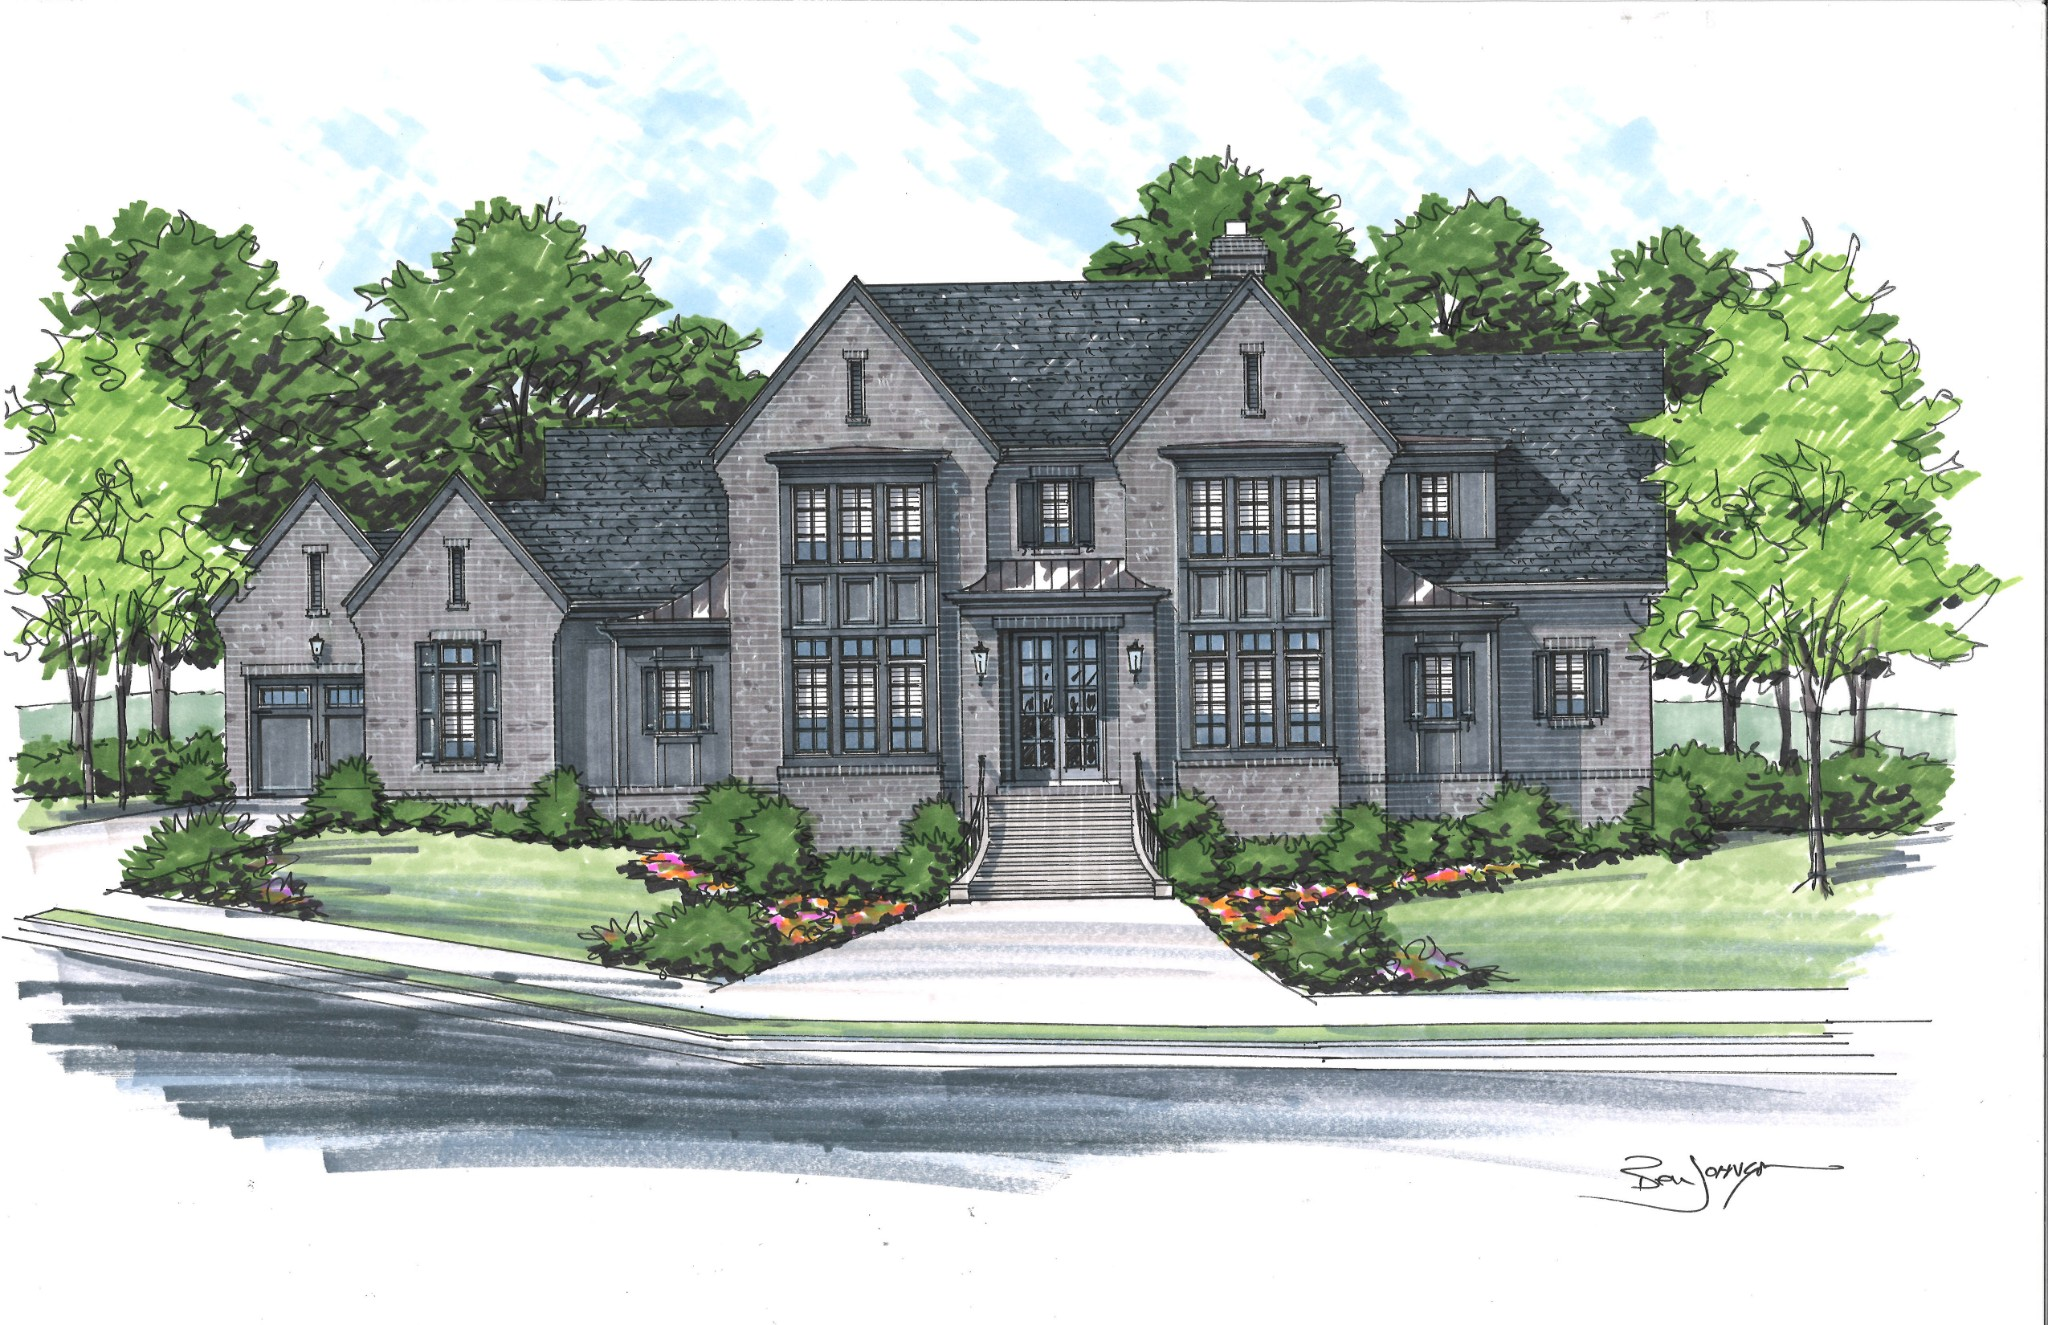 8135 Heirloom Blvd (Lot 11017) Property Photo - College Grove, TN real estate listing